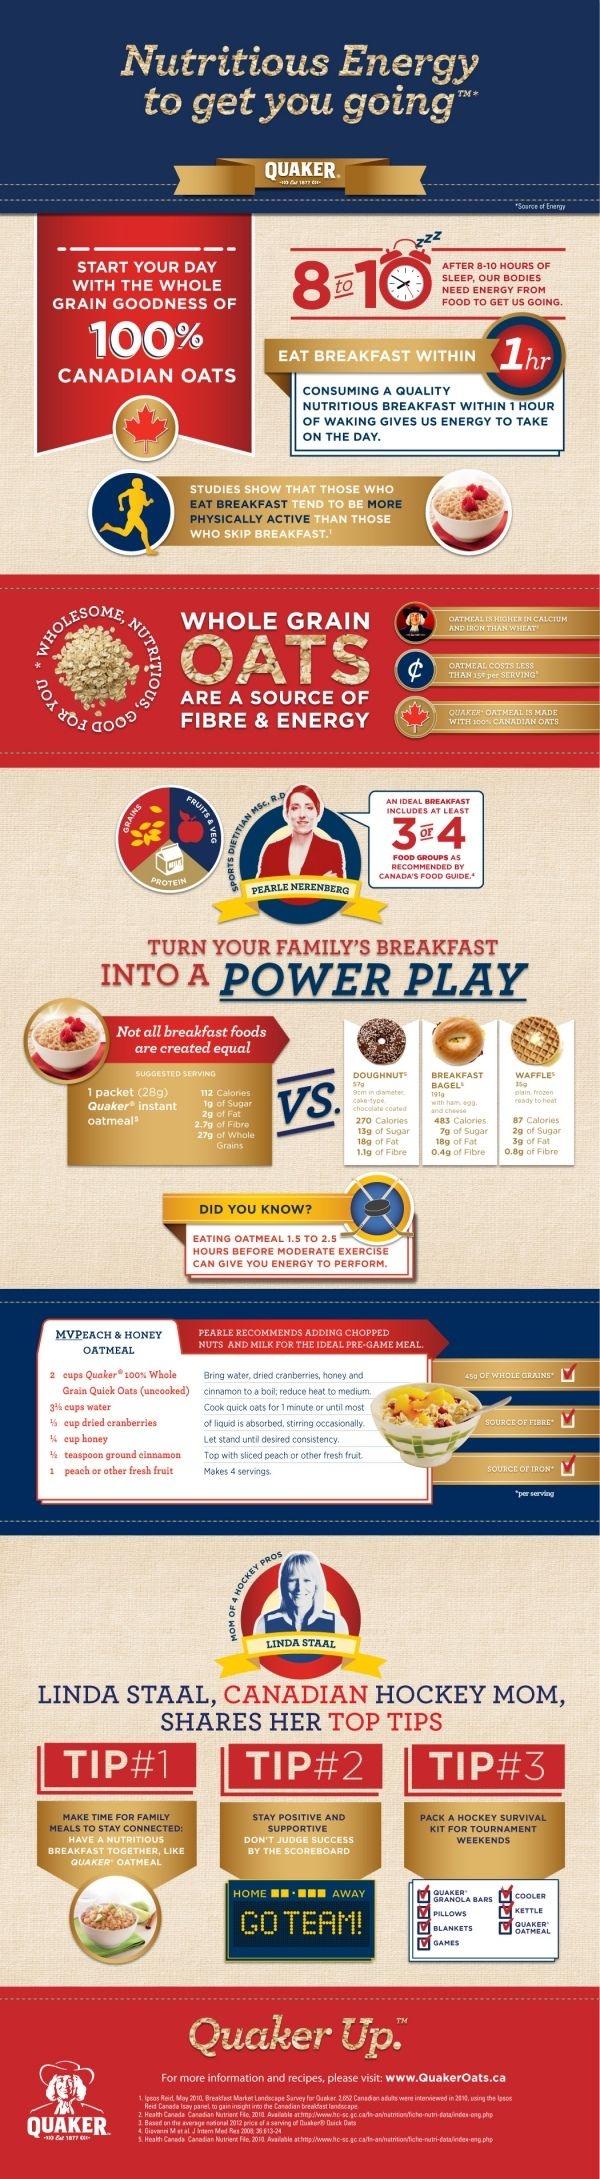 Hockey Mom Tips from Mom of 4 Pro Hockey Players and Quaker #infographic